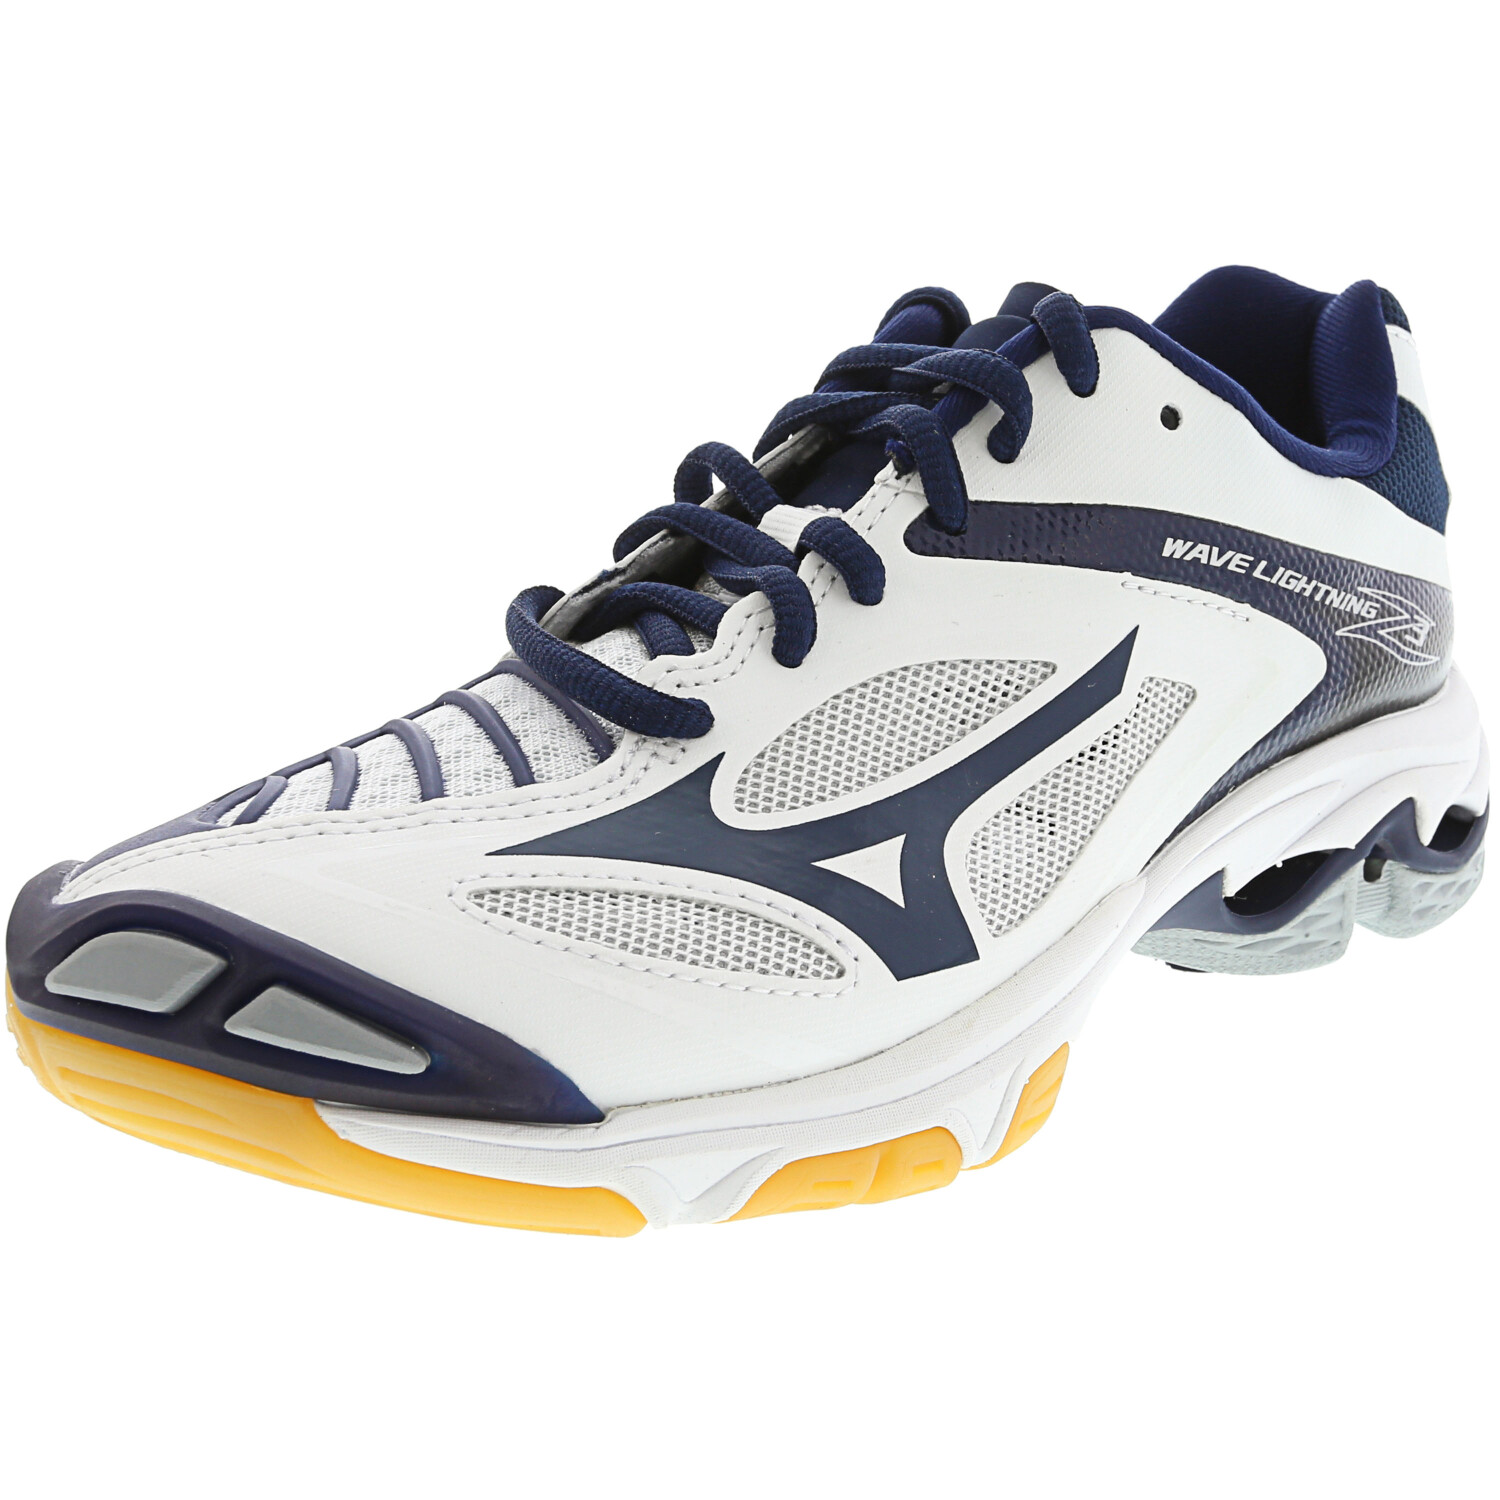 Mizuno Wave Lightning Z3 Volleyball Shoe - 8M - White / Navy / Black